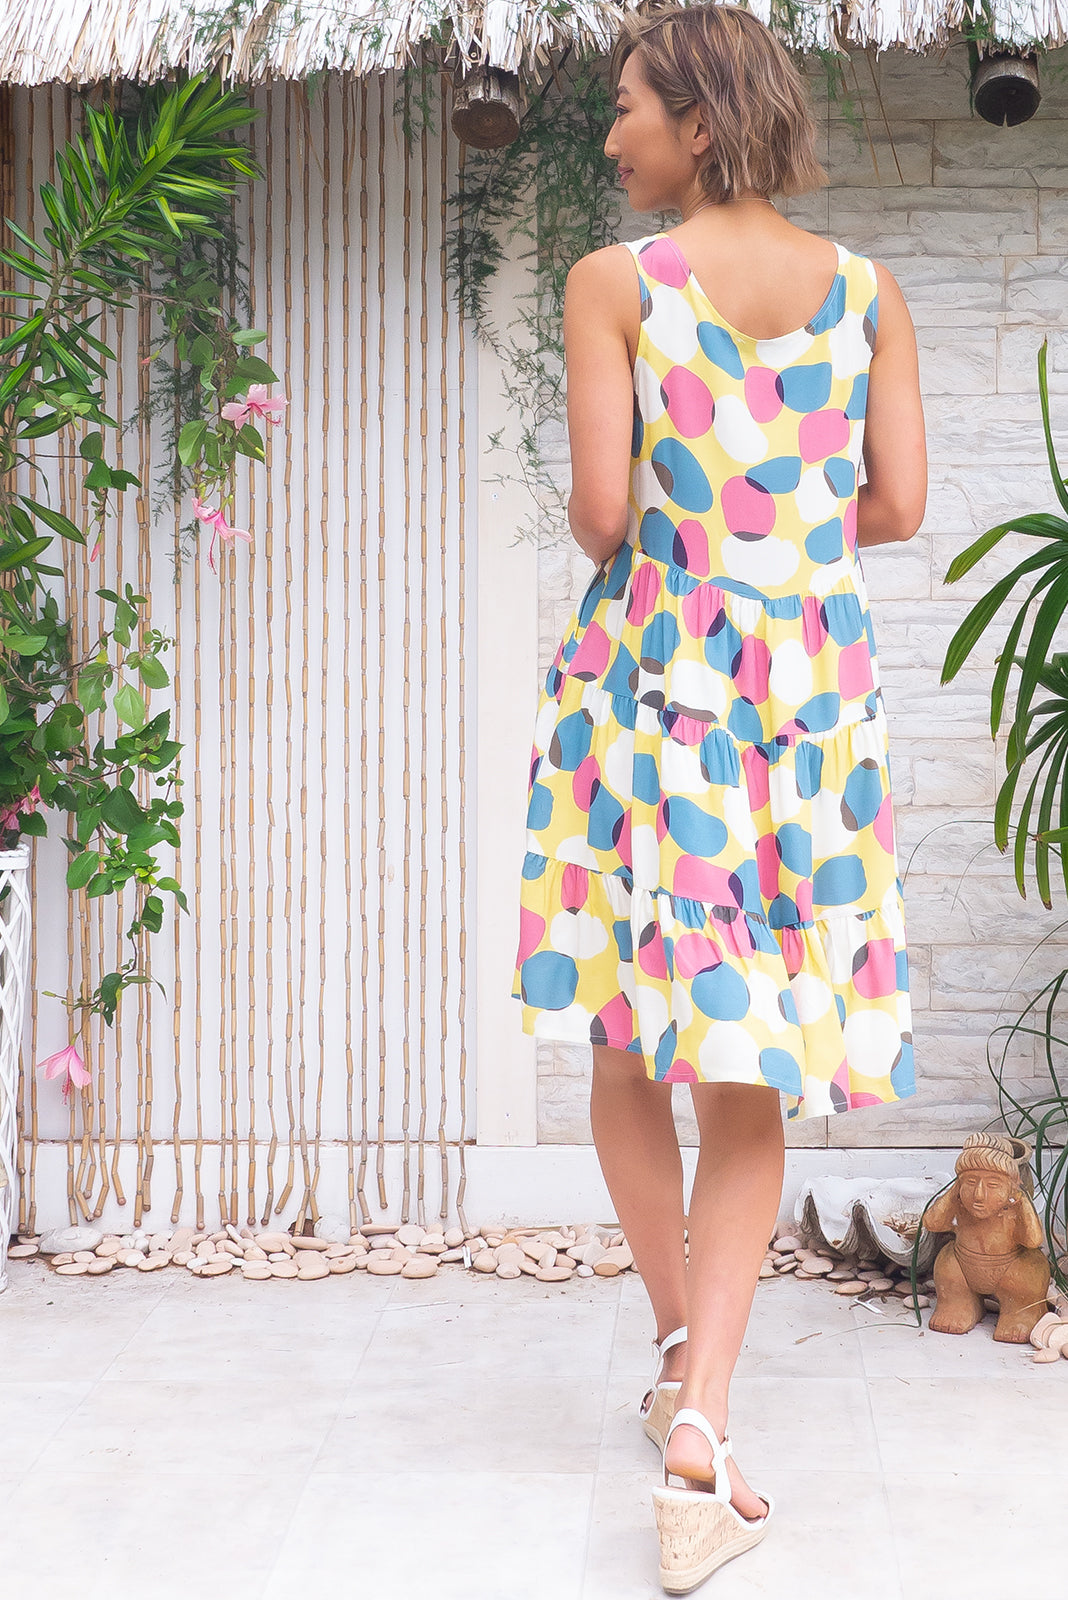 The Jina Zinzi Yellow Dress is a slip on, loose style dress featuring scooped neckline, lined bust, side pockets, tiered, full skirt and 100% rayon in pale yellow base with white, mauve and smoky blue spots print.